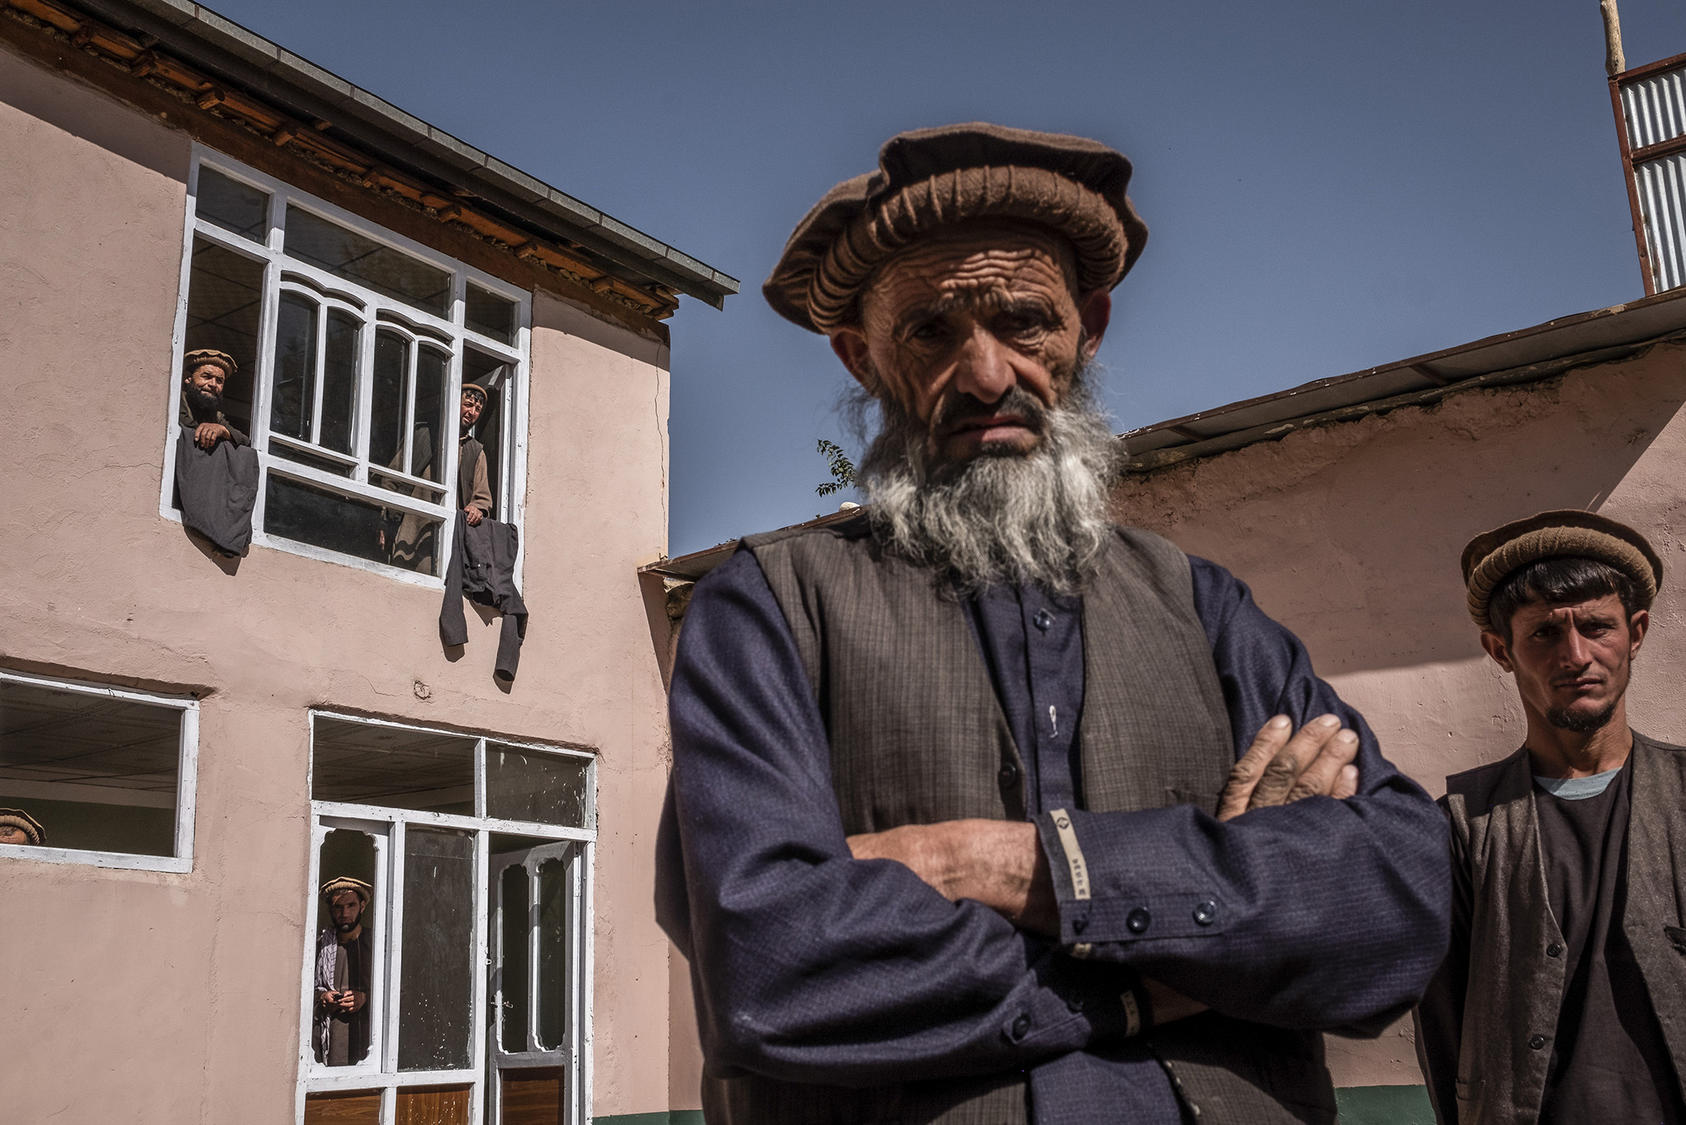 Mohammad Hassan, 65, inside a guarded compound in Faizabad, Afghanistan, Sept. 19, 2019. Hassan said he battled against the Soviets in the 1980s and government troops this year while fighting for the Taliban. (Jim Huylebroek/The New York Times)